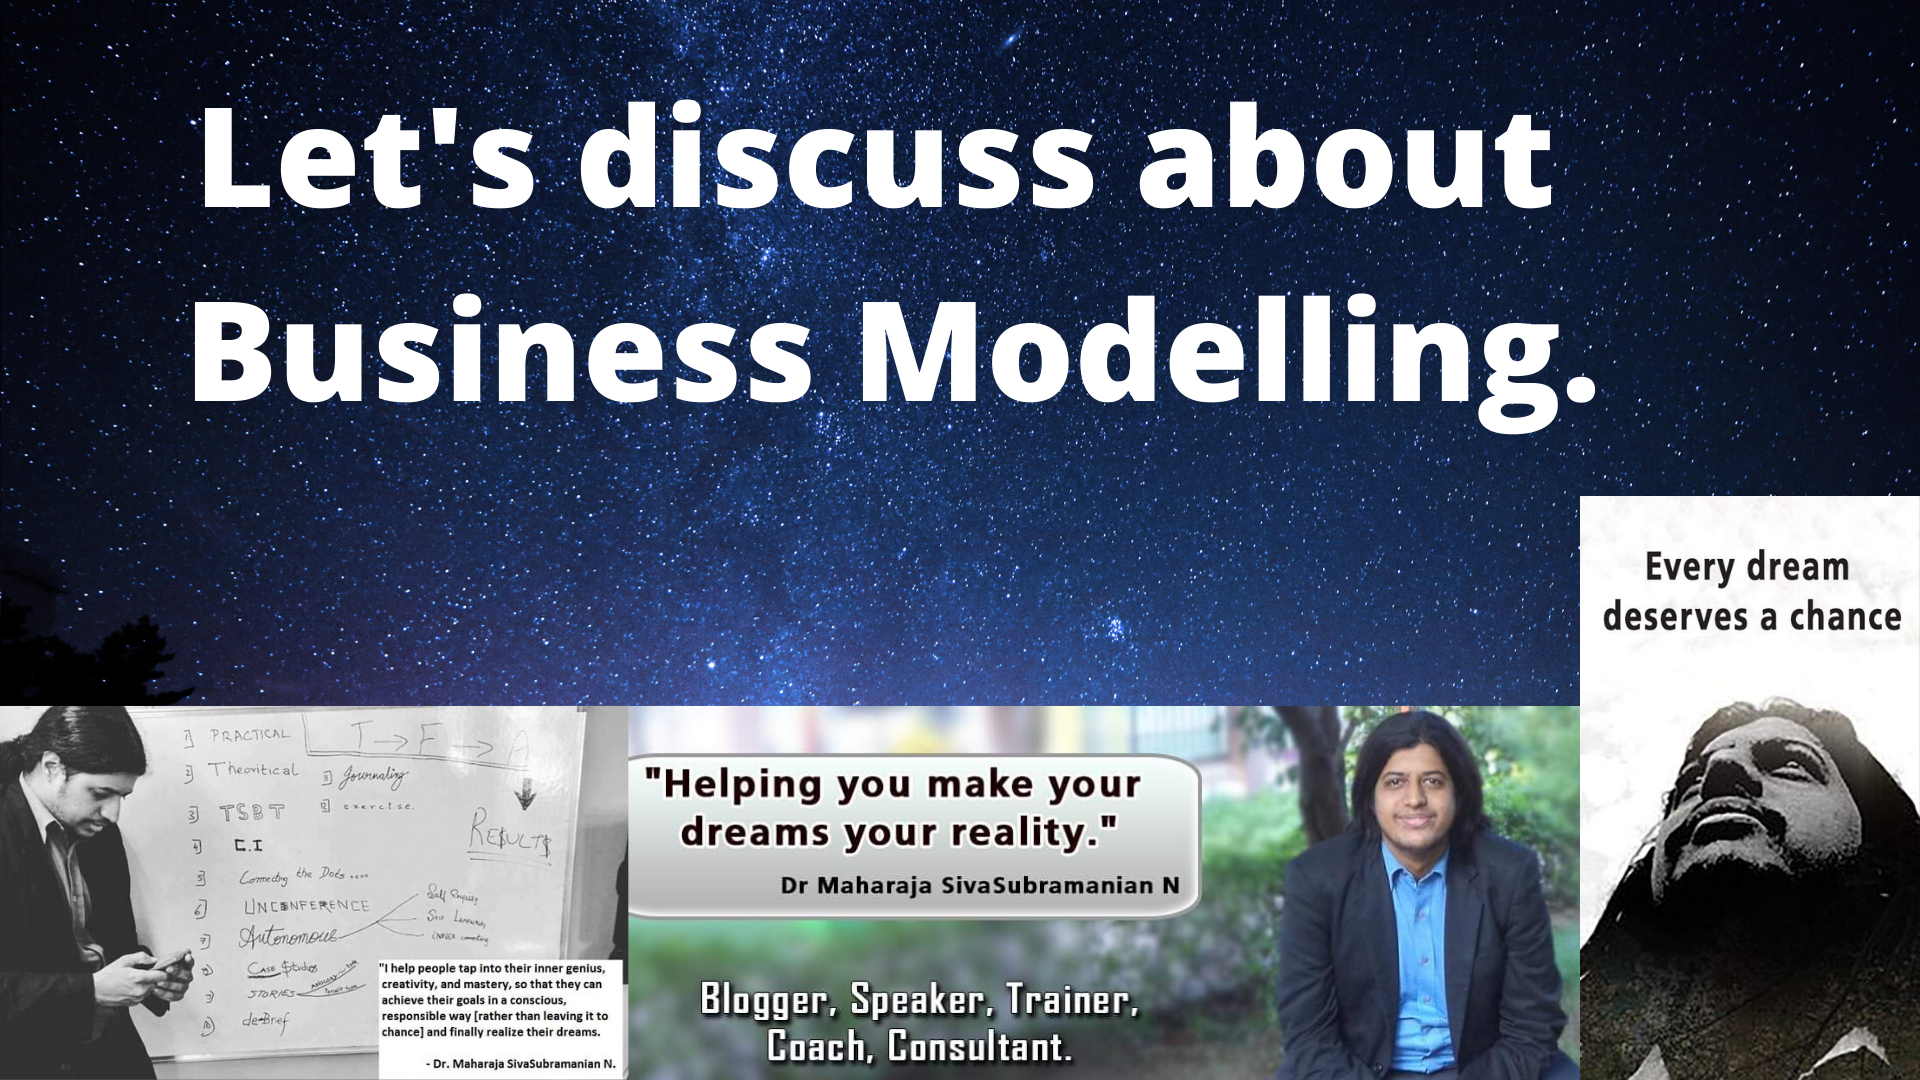 Let's discuss about Business Modelling.